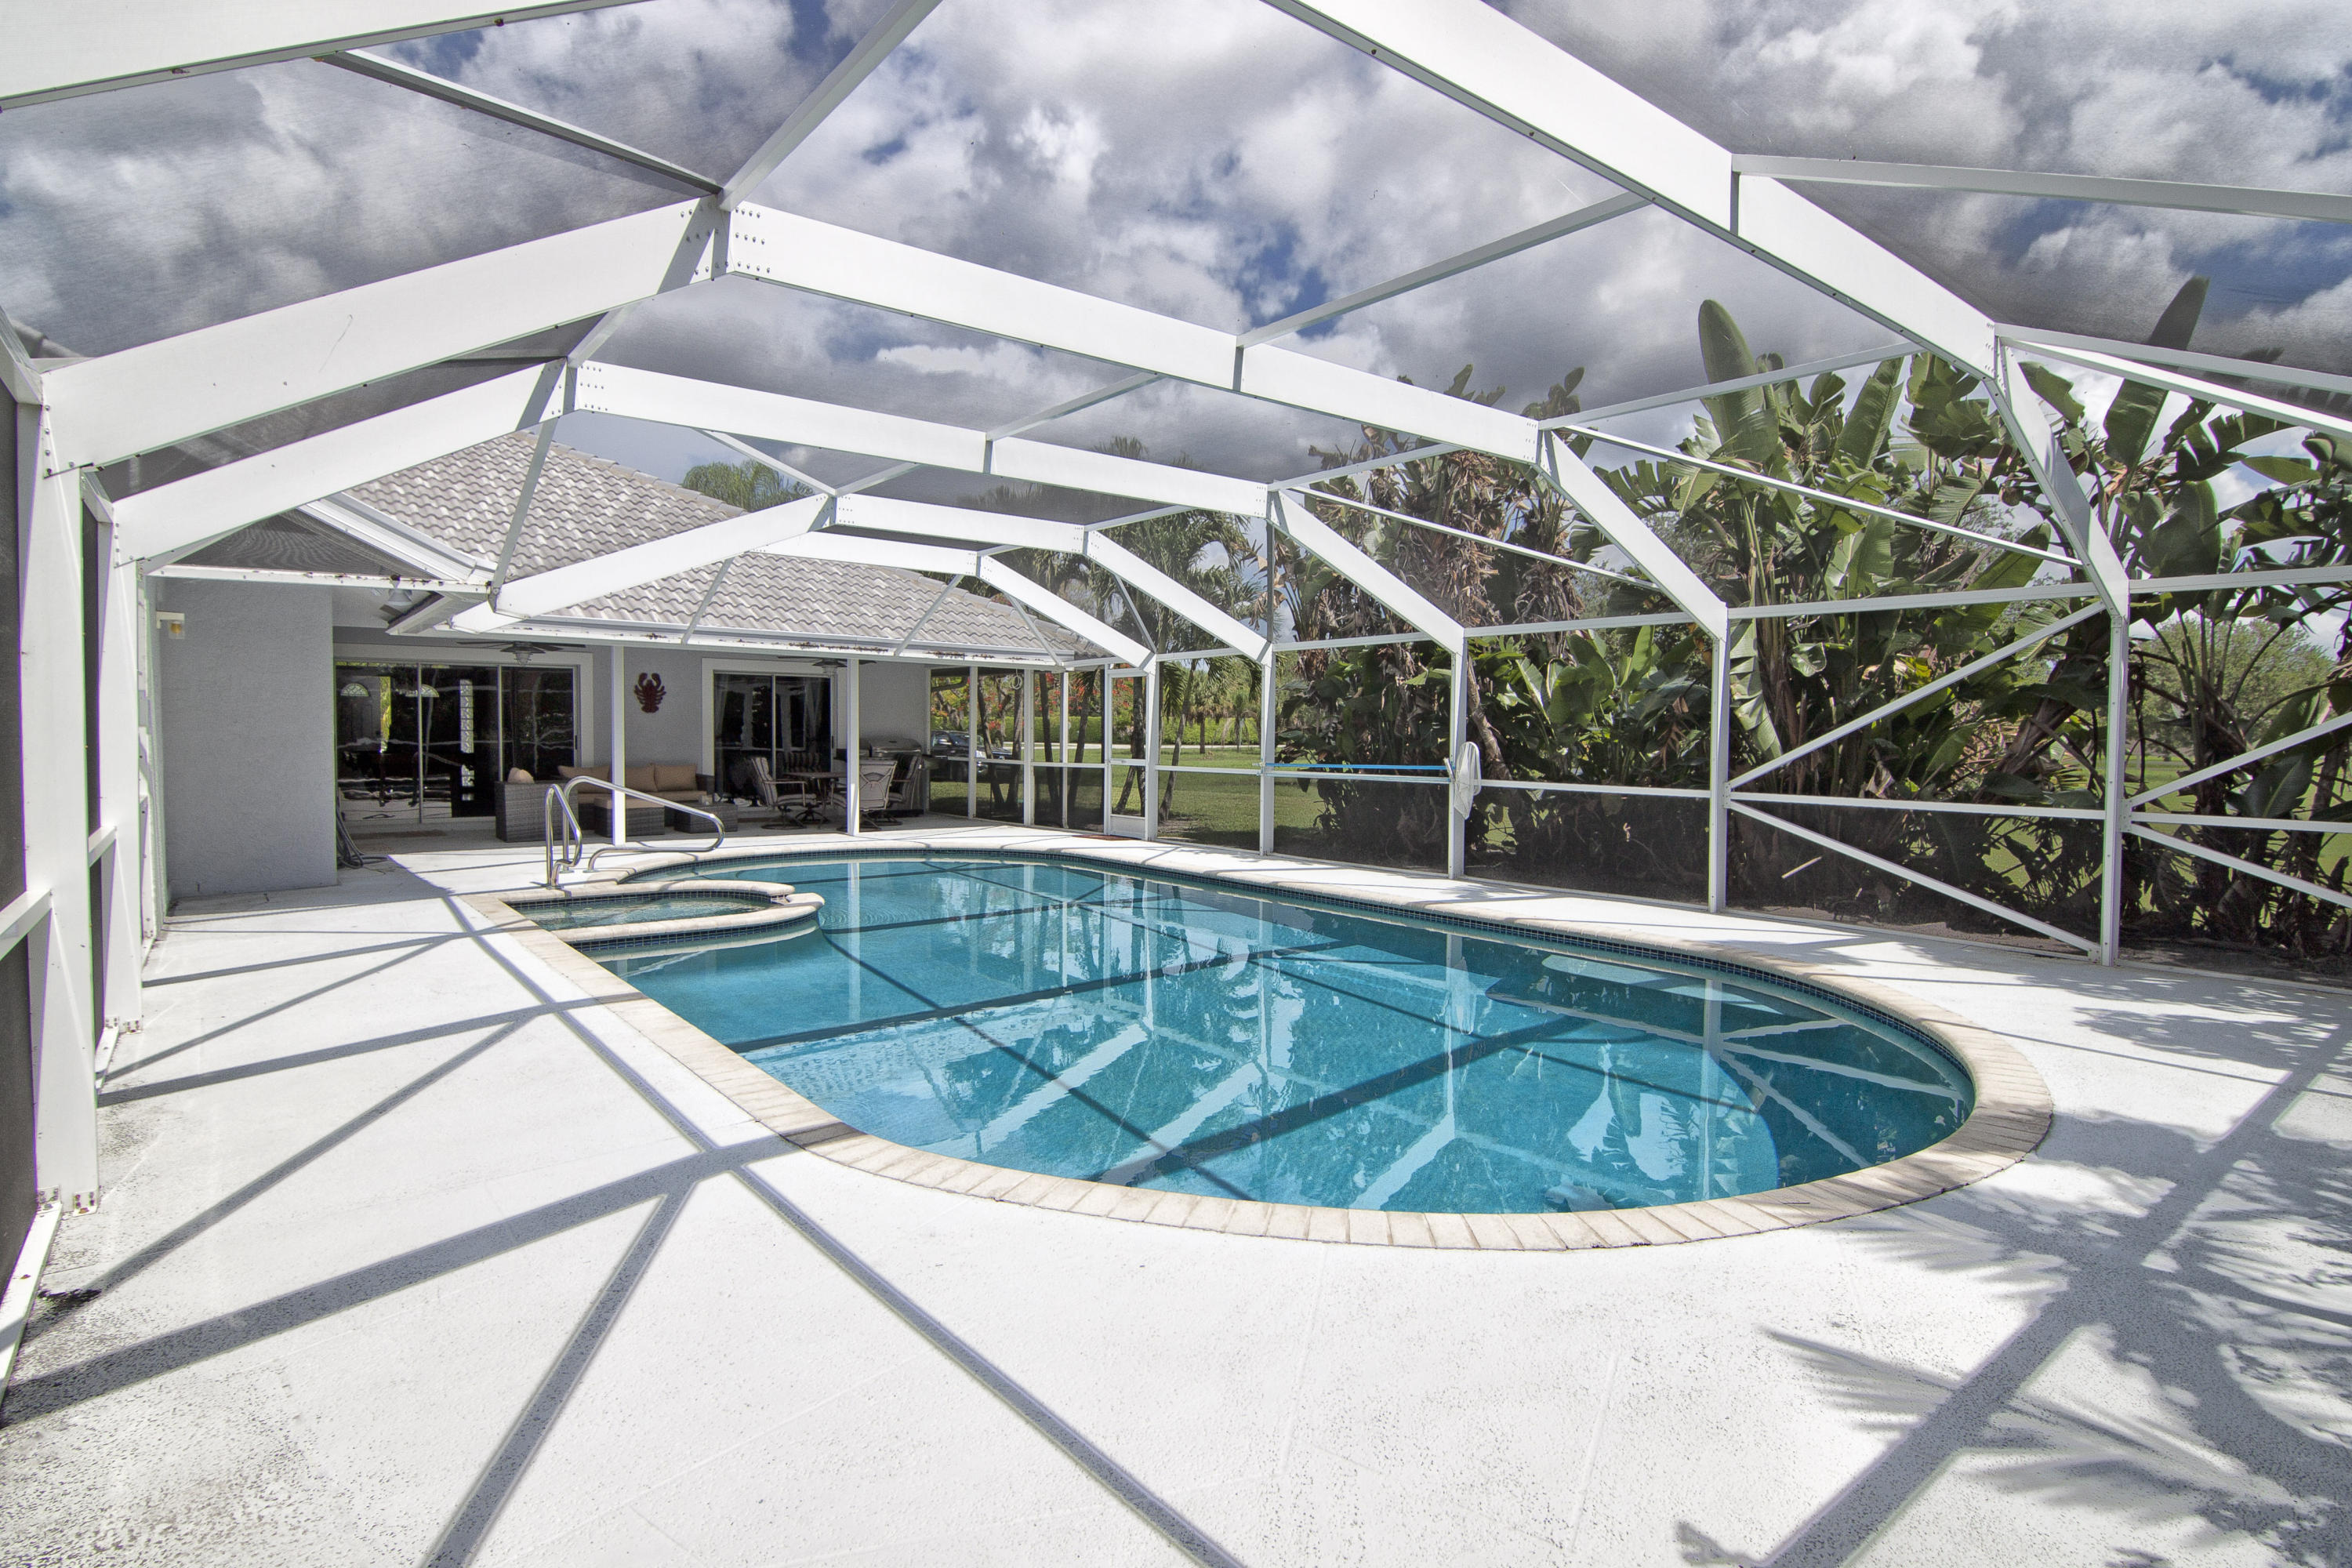 2696 Appaloosa Trail, Wellington, Florida 33414, 4 Bedrooms Bedrooms, ,3 BathroomsBathrooms,Single Family,For Rent,Saddle Trail Park,Appaloosa,2696,RX-10452354